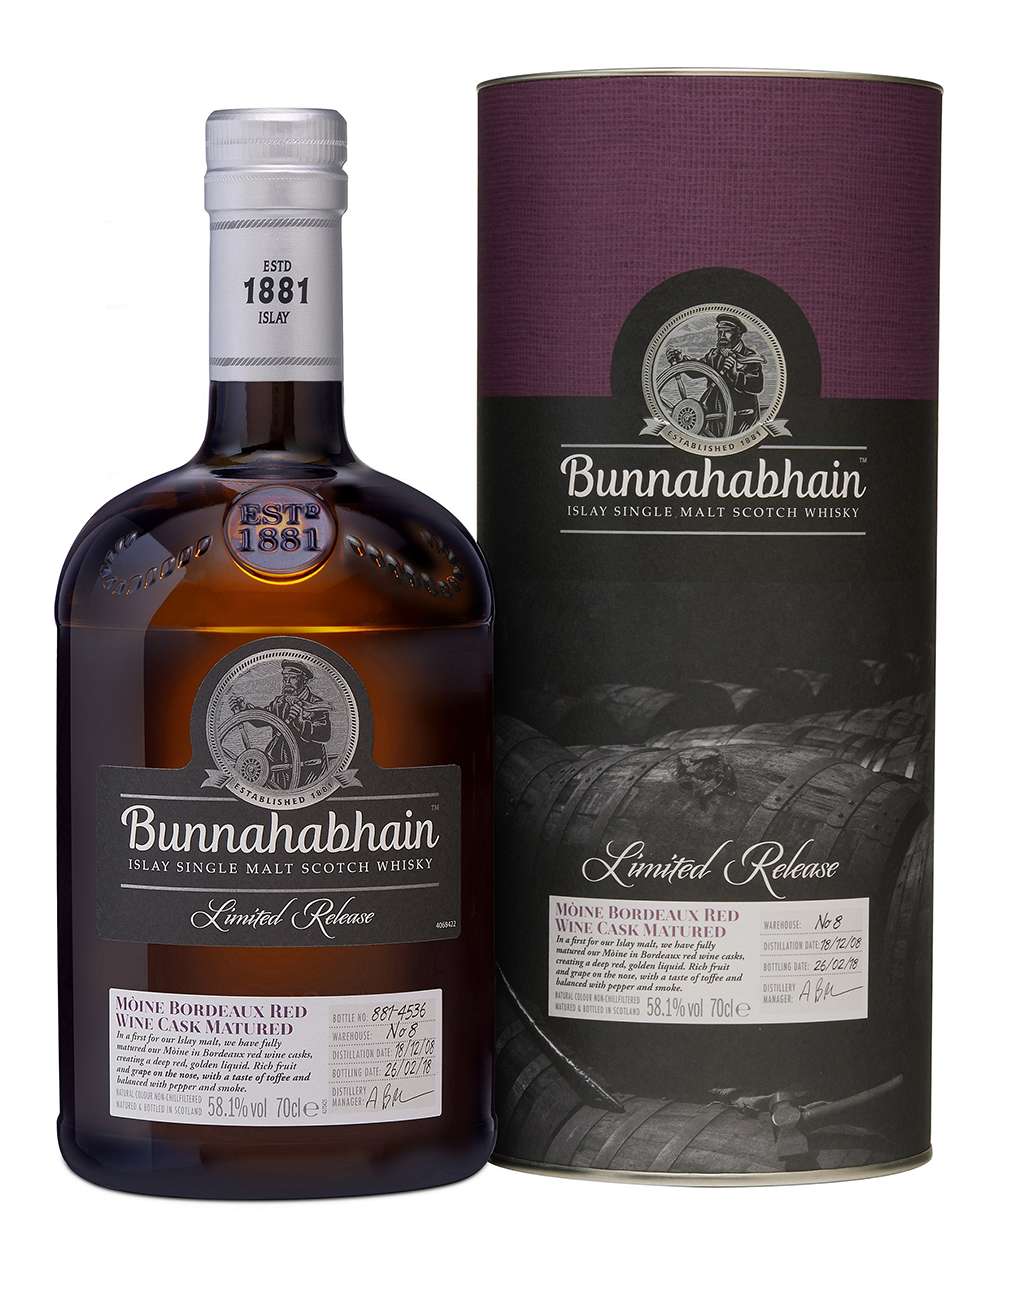 Bunnahabhain 2008 Mòine Bordeaux Red Wine Cask Matured